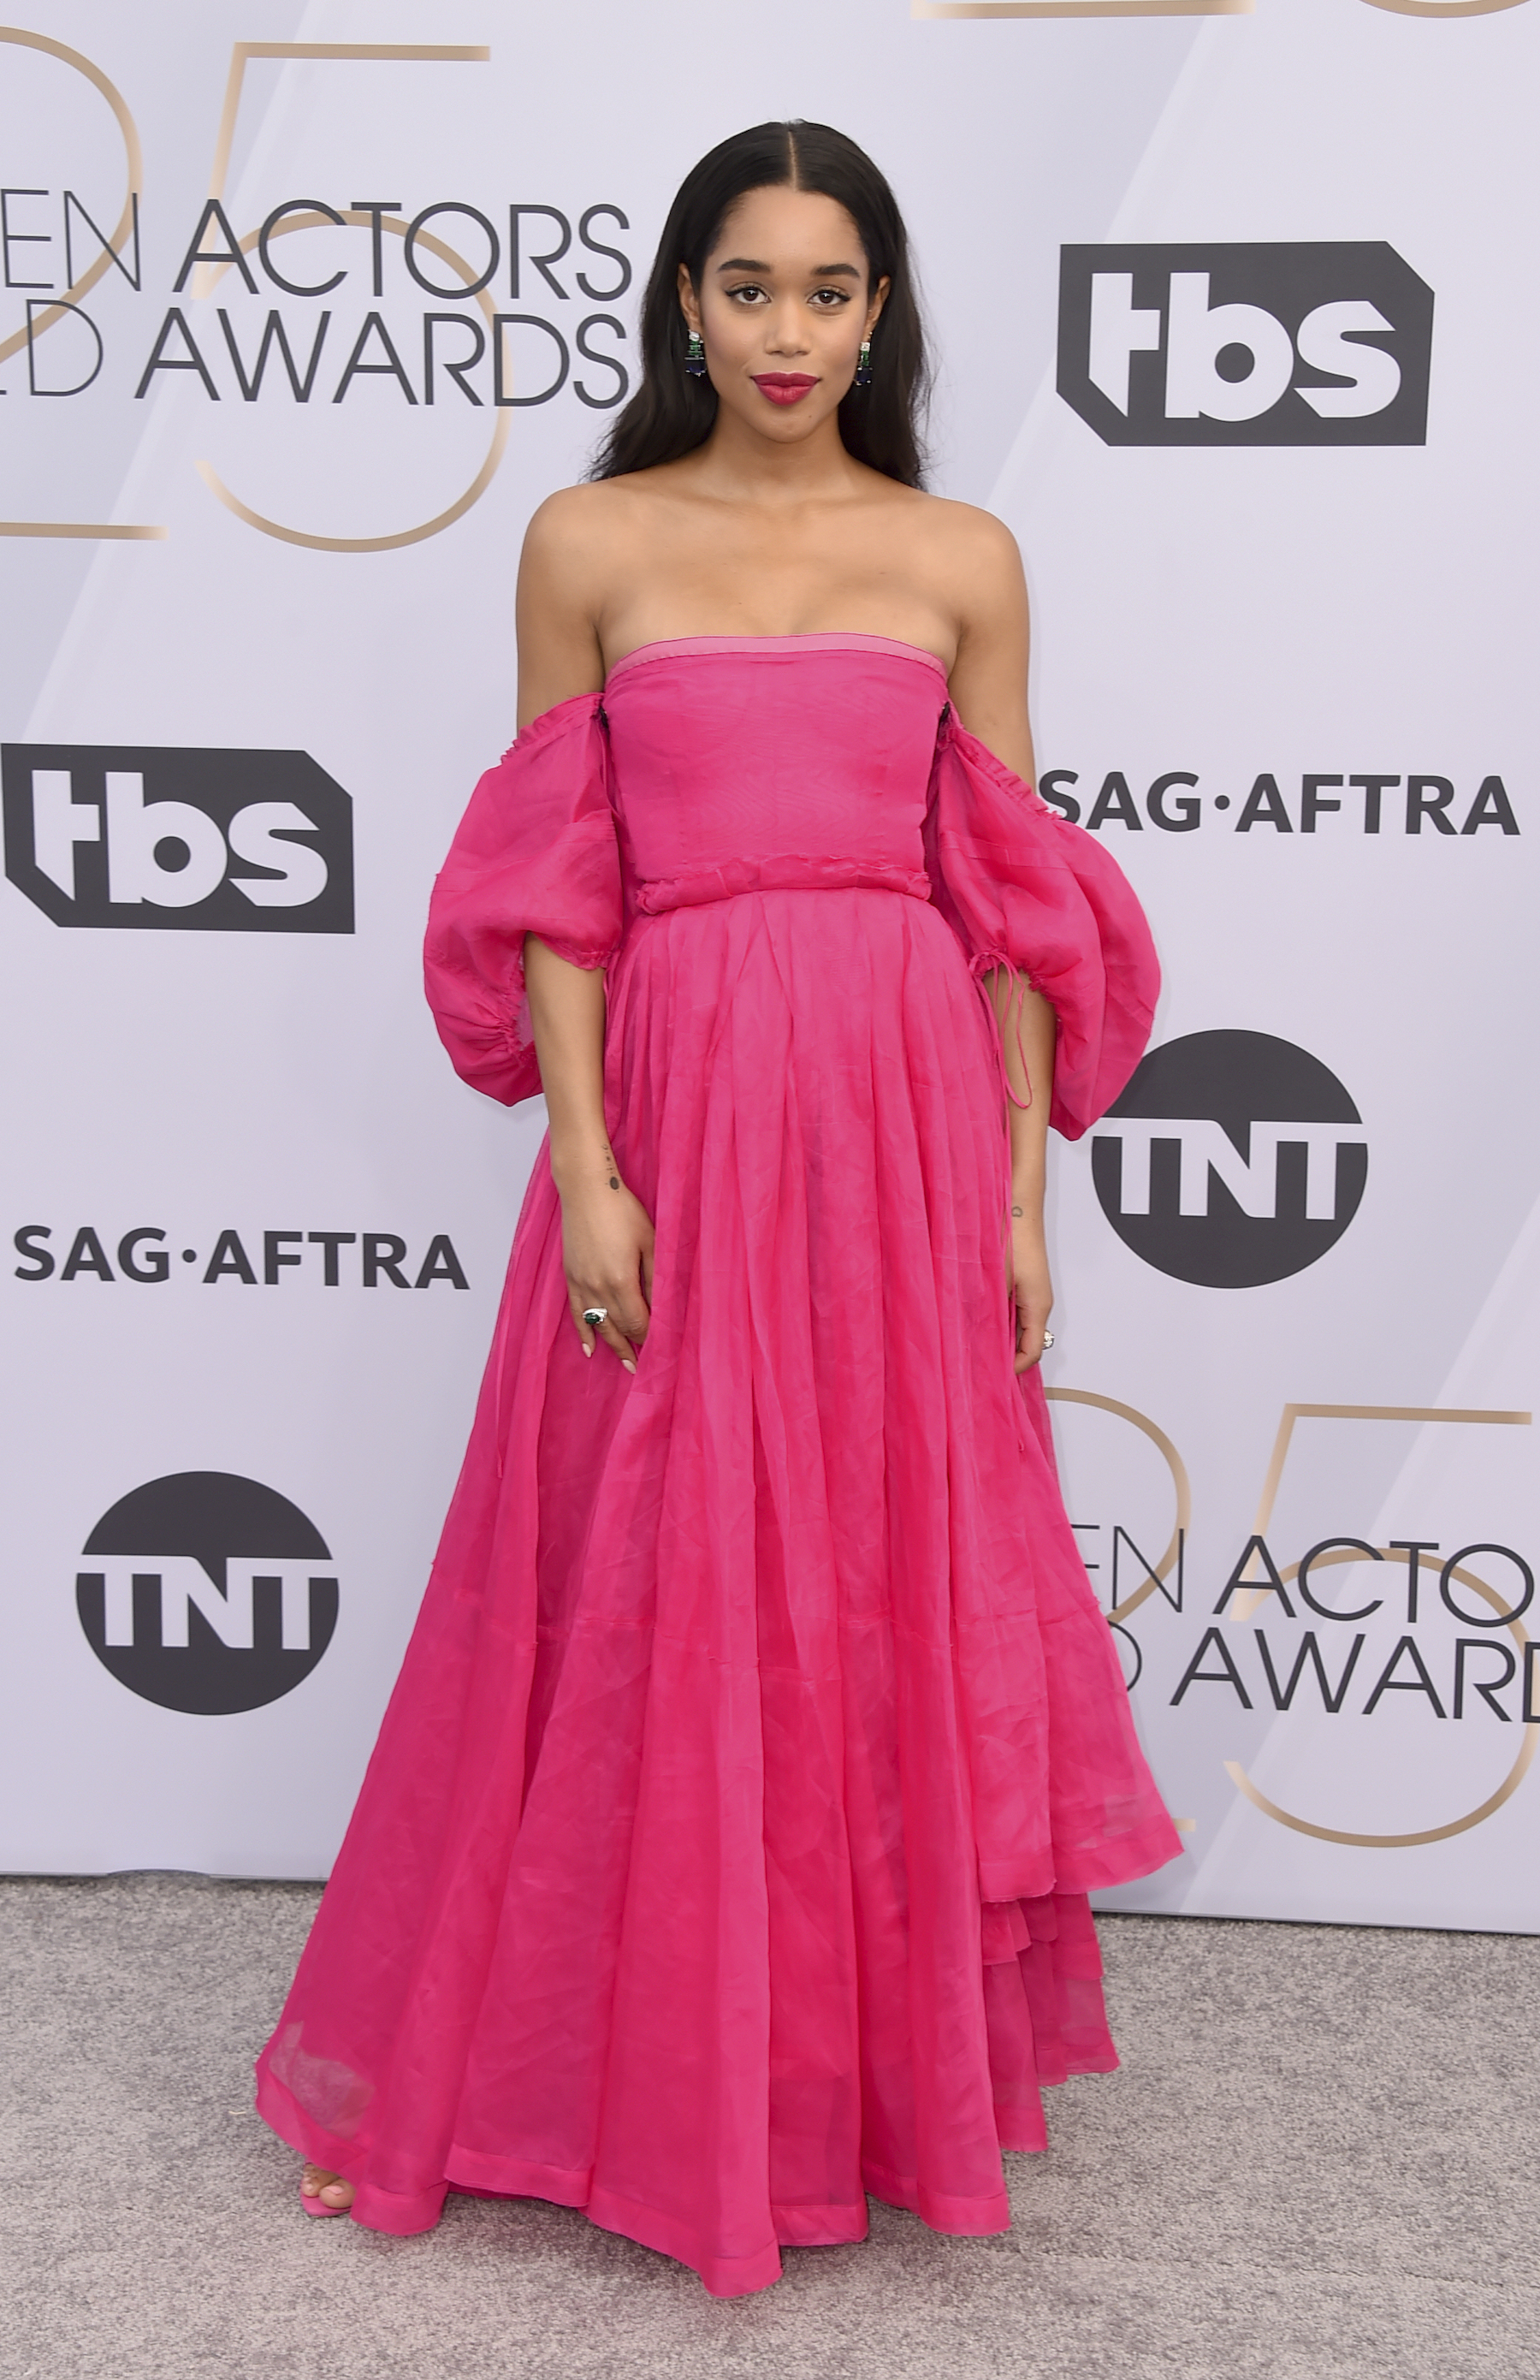 <div class='meta'><div class='origin-logo' data-origin='AP'></div><span class='caption-text' data-credit='Jordan Strauss/Invision/AP'>Laura Harrier arrives at the 25th annual Screen Actors Guild Awards at the Shrine Auditorium & Expo Hall on Sunday, Jan. 27, 2019, in Los Angeles.</span></div>